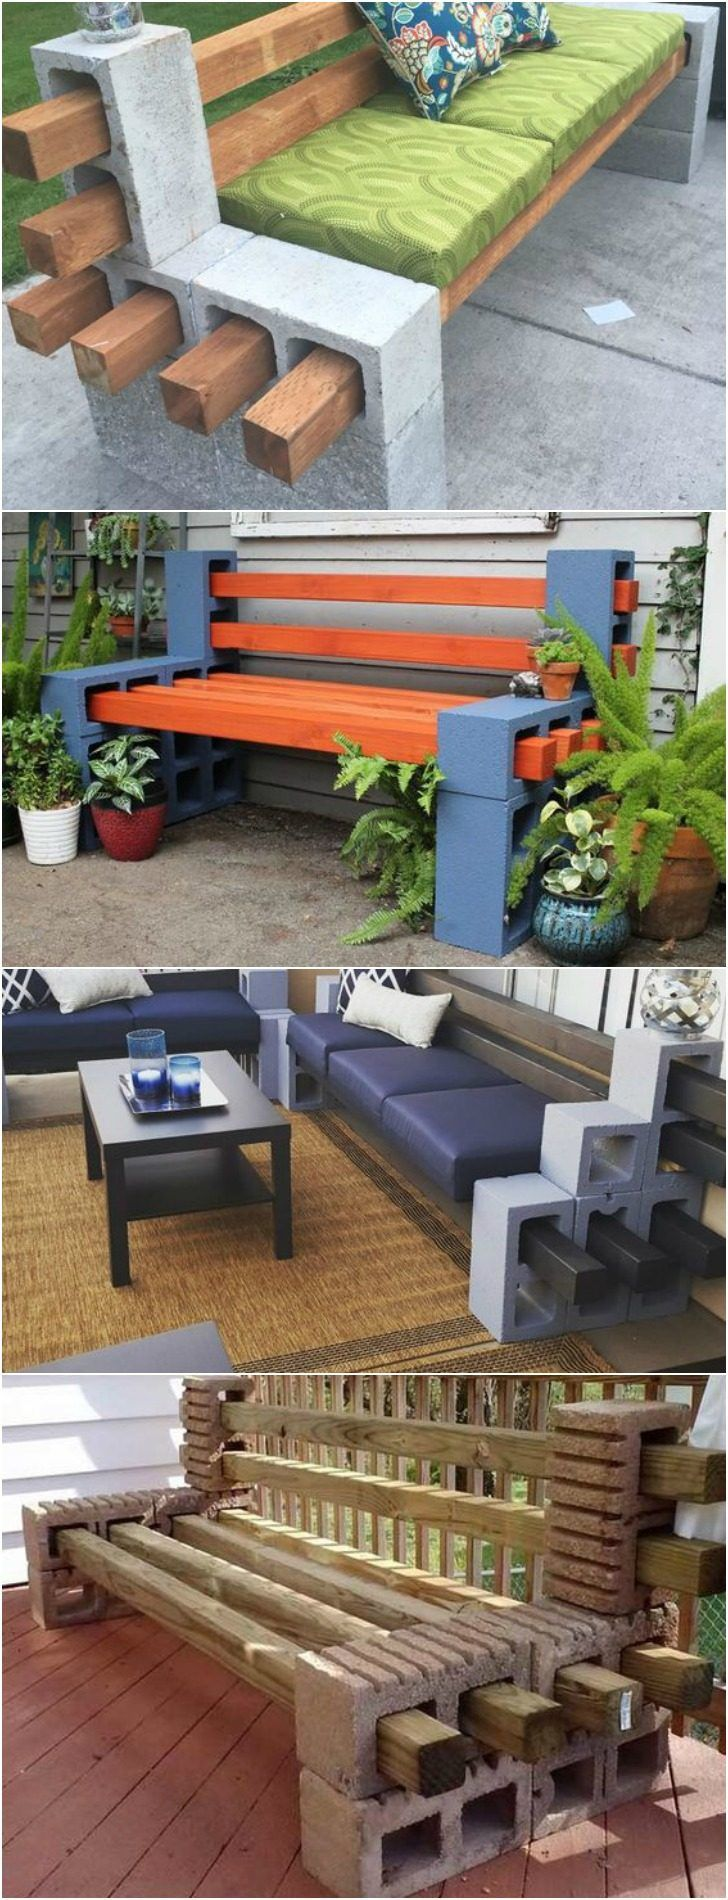 How To Make A Cinder Block Bench 10 Amazing Ideas To Inspire You Meuble Jardin Amenagement Jardin Mobilier Jardin